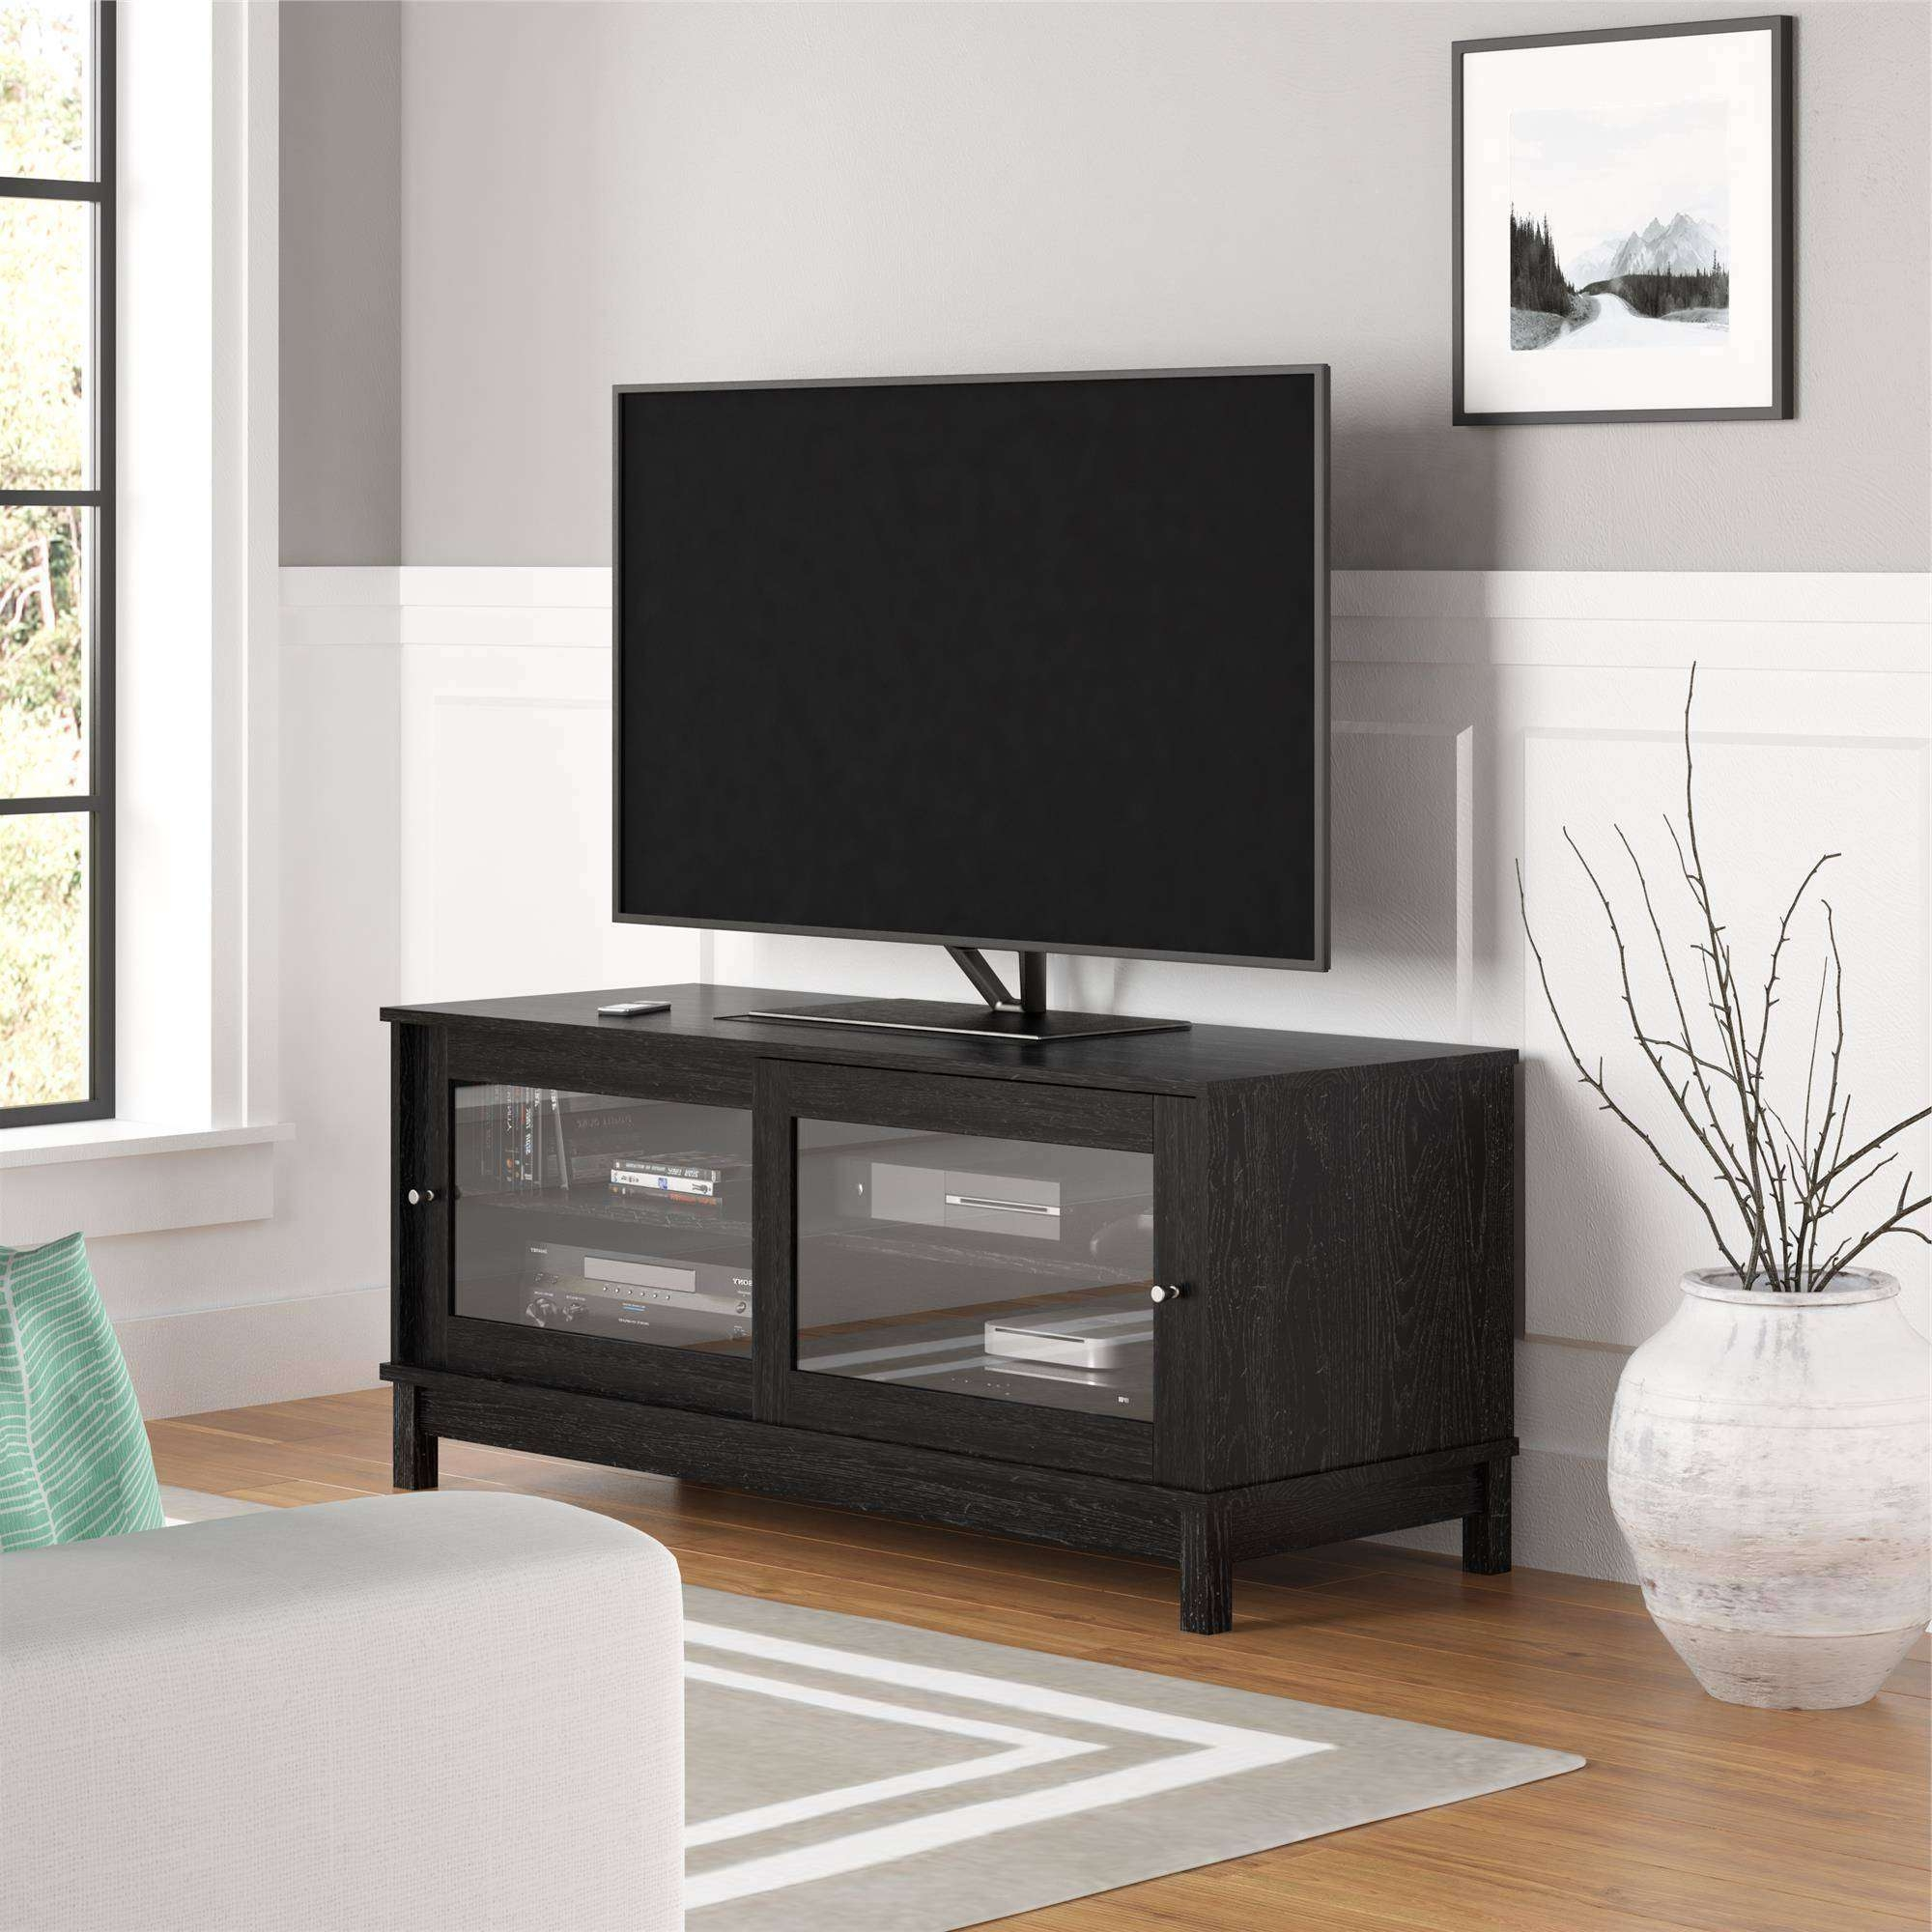 "Mainstays 55"" Tv Stand With Sliding Glass Doors, Black Ebony Ash For Sleek Tv Stands (View 8 of 15)"